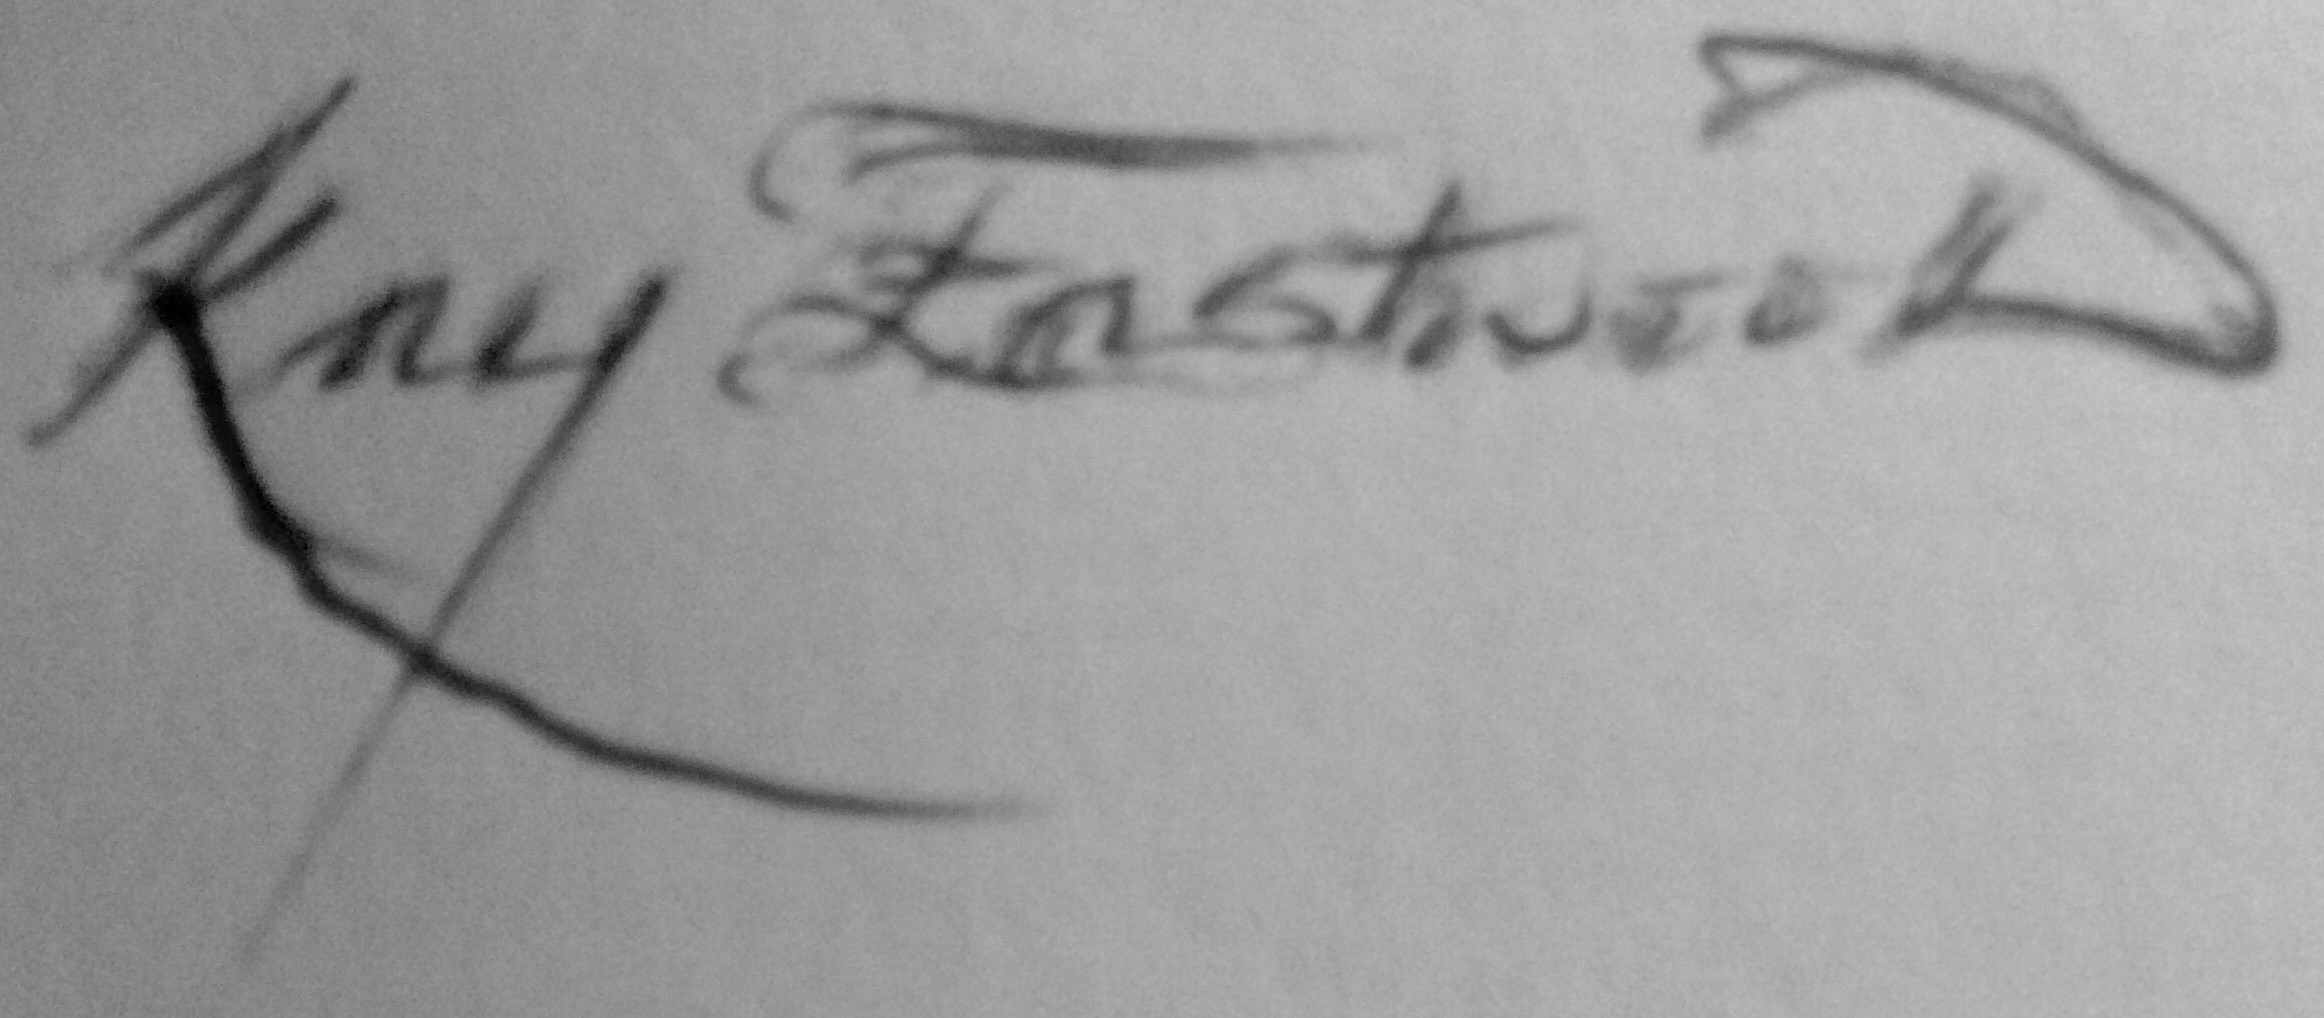 Kay Eastwood's Signature